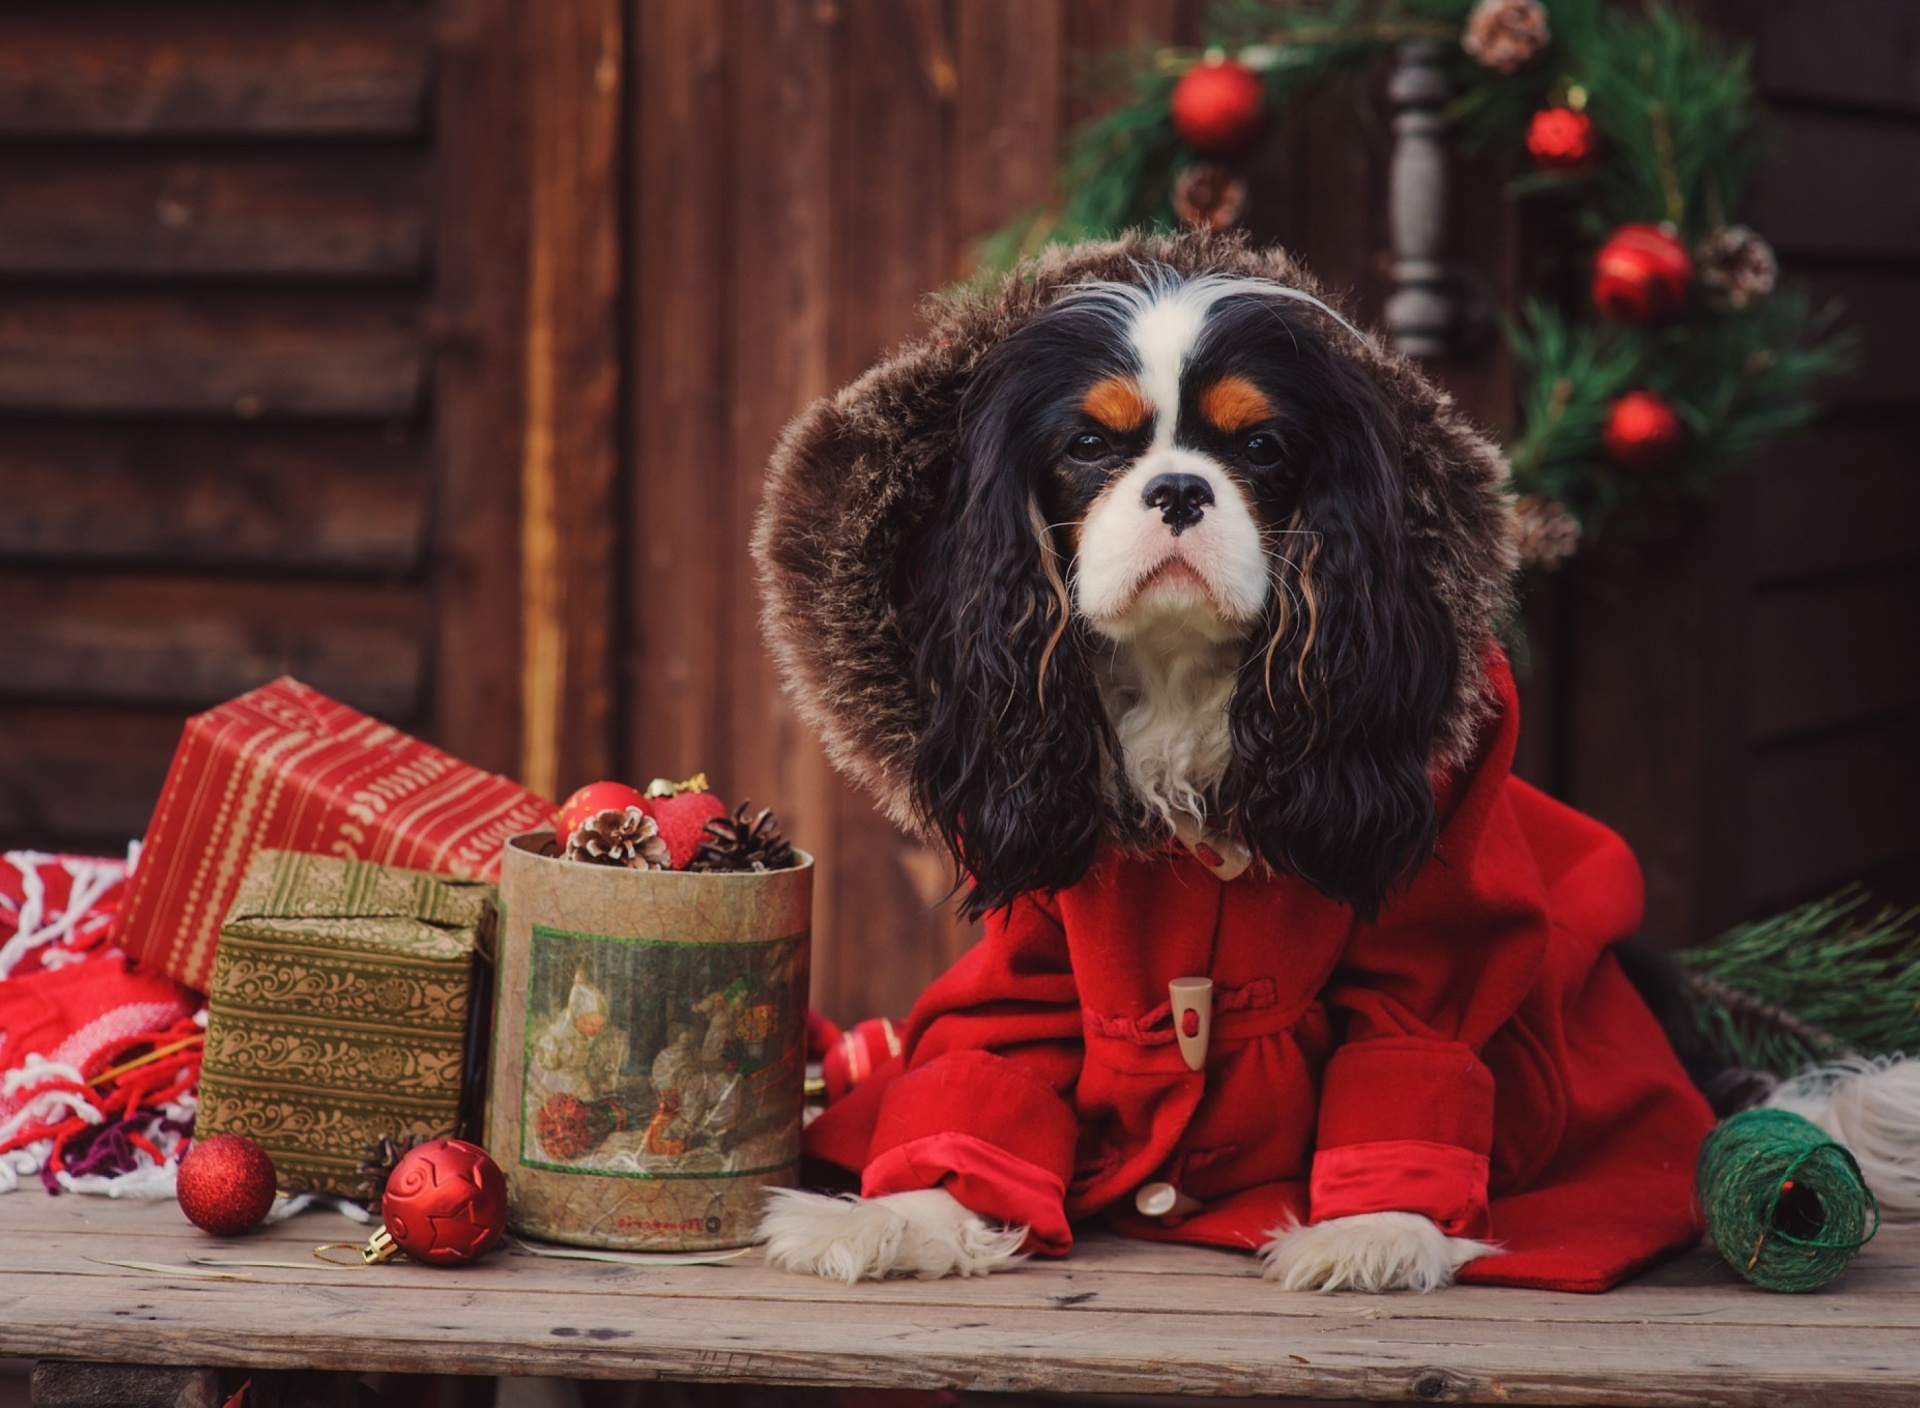 Dog Cavalier King Charles Spaniel in Christmas Costume wallpaper 1920x1408